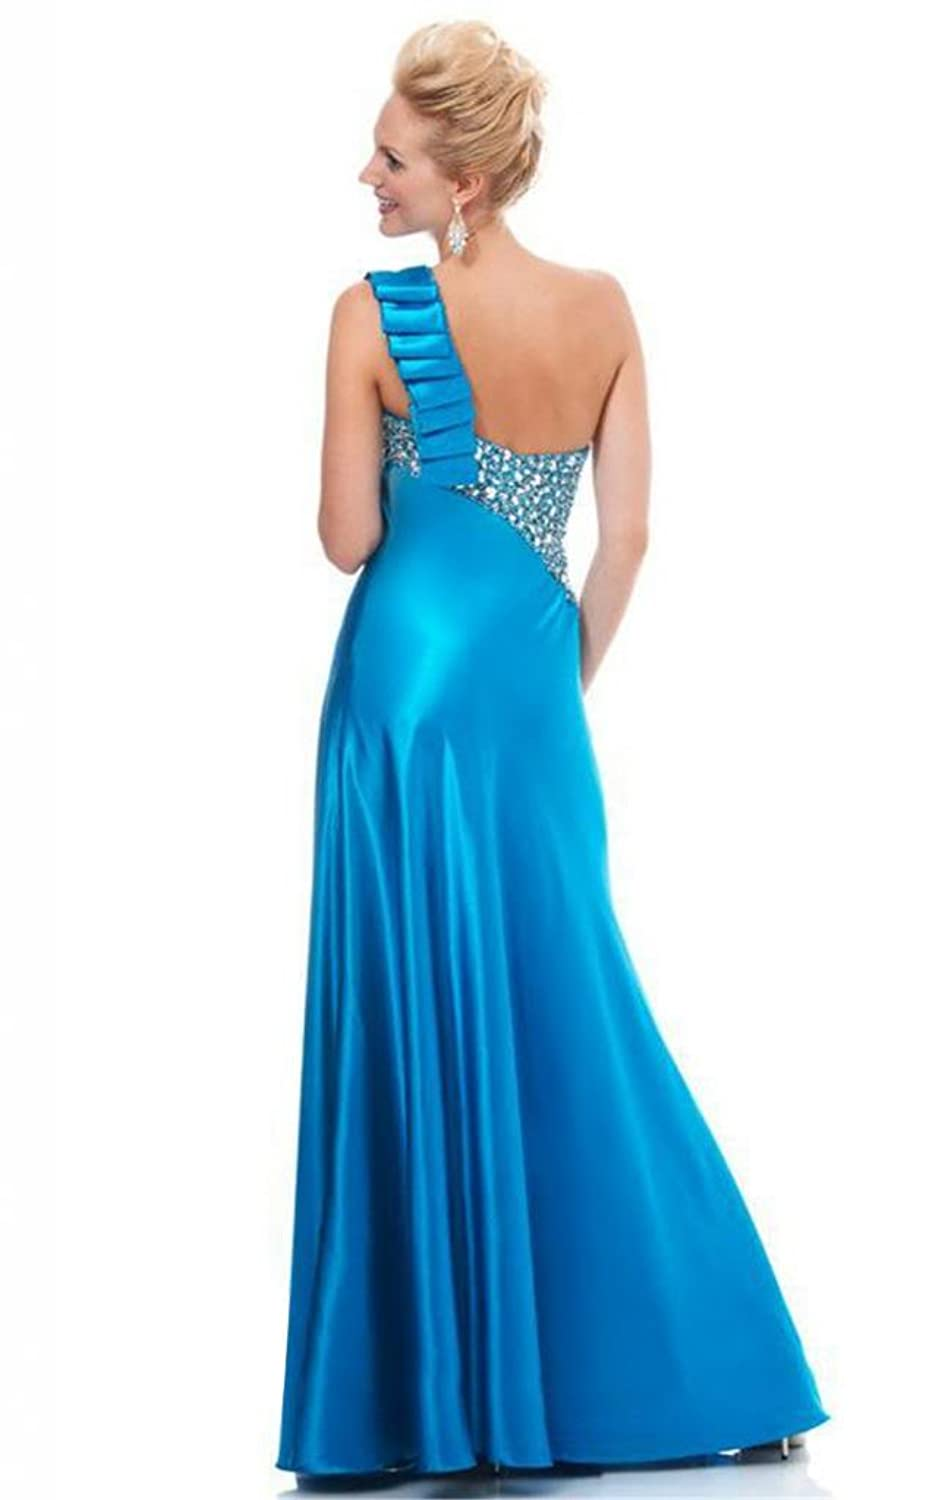 Passat Satin Turquoise Dress High Low Prom Dress at Amazon Womens Clothing store: